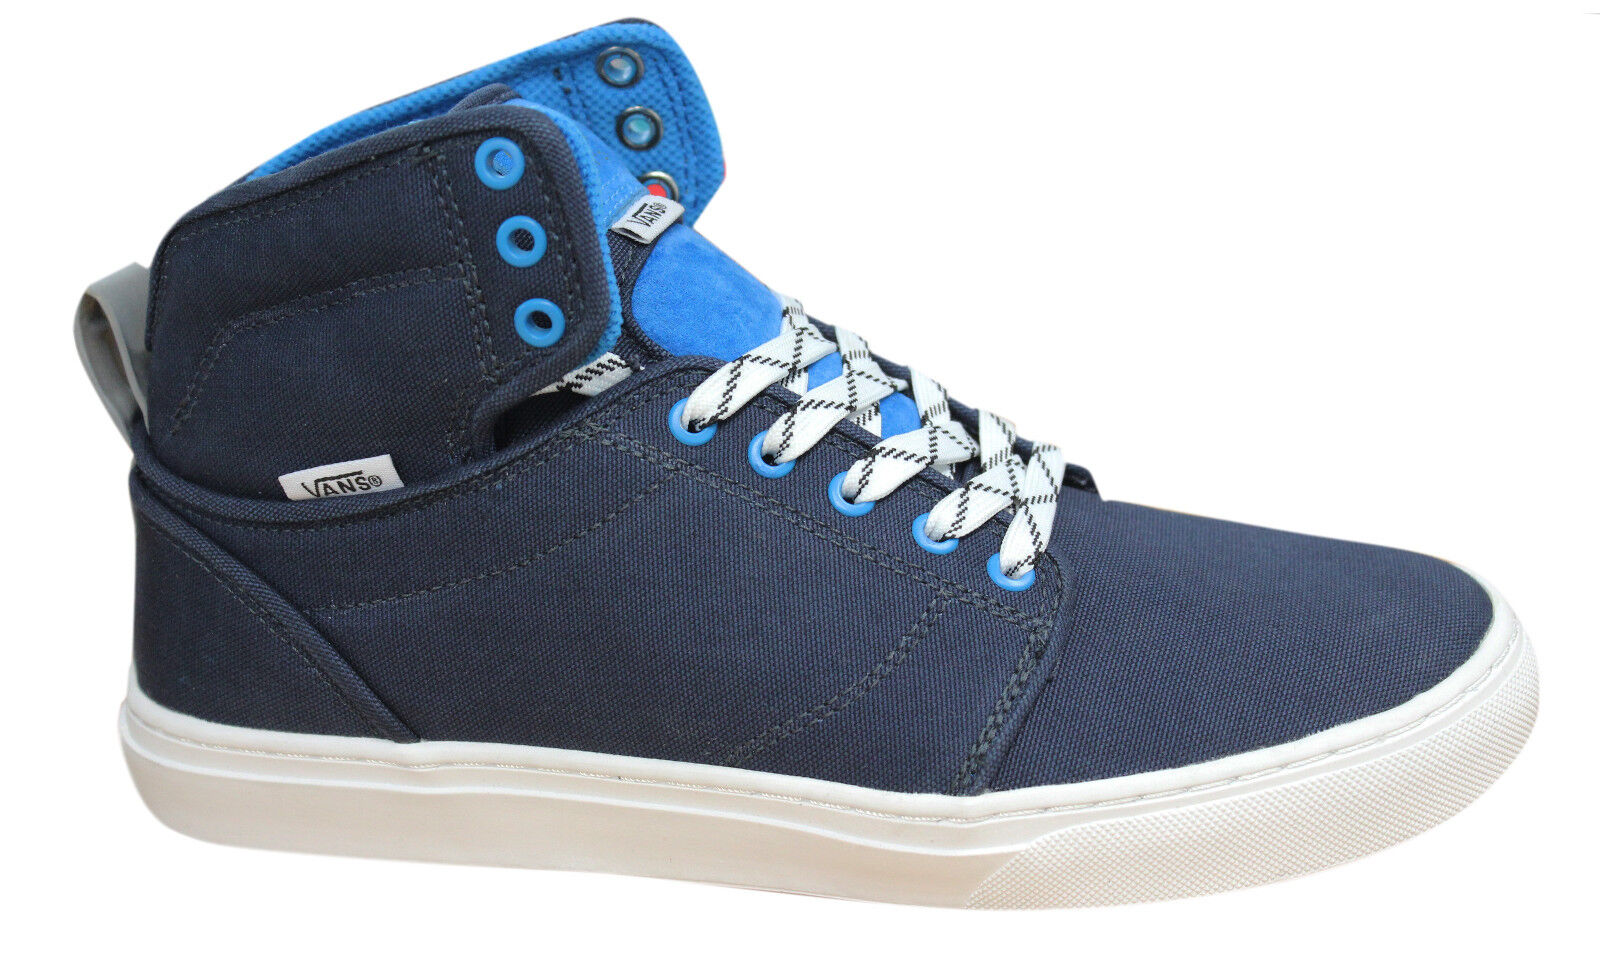 Vans Off The Wall Top Alomar Reflective Mens Mid Top Wall Trainers Navy Blue KX08RG VF 36014e